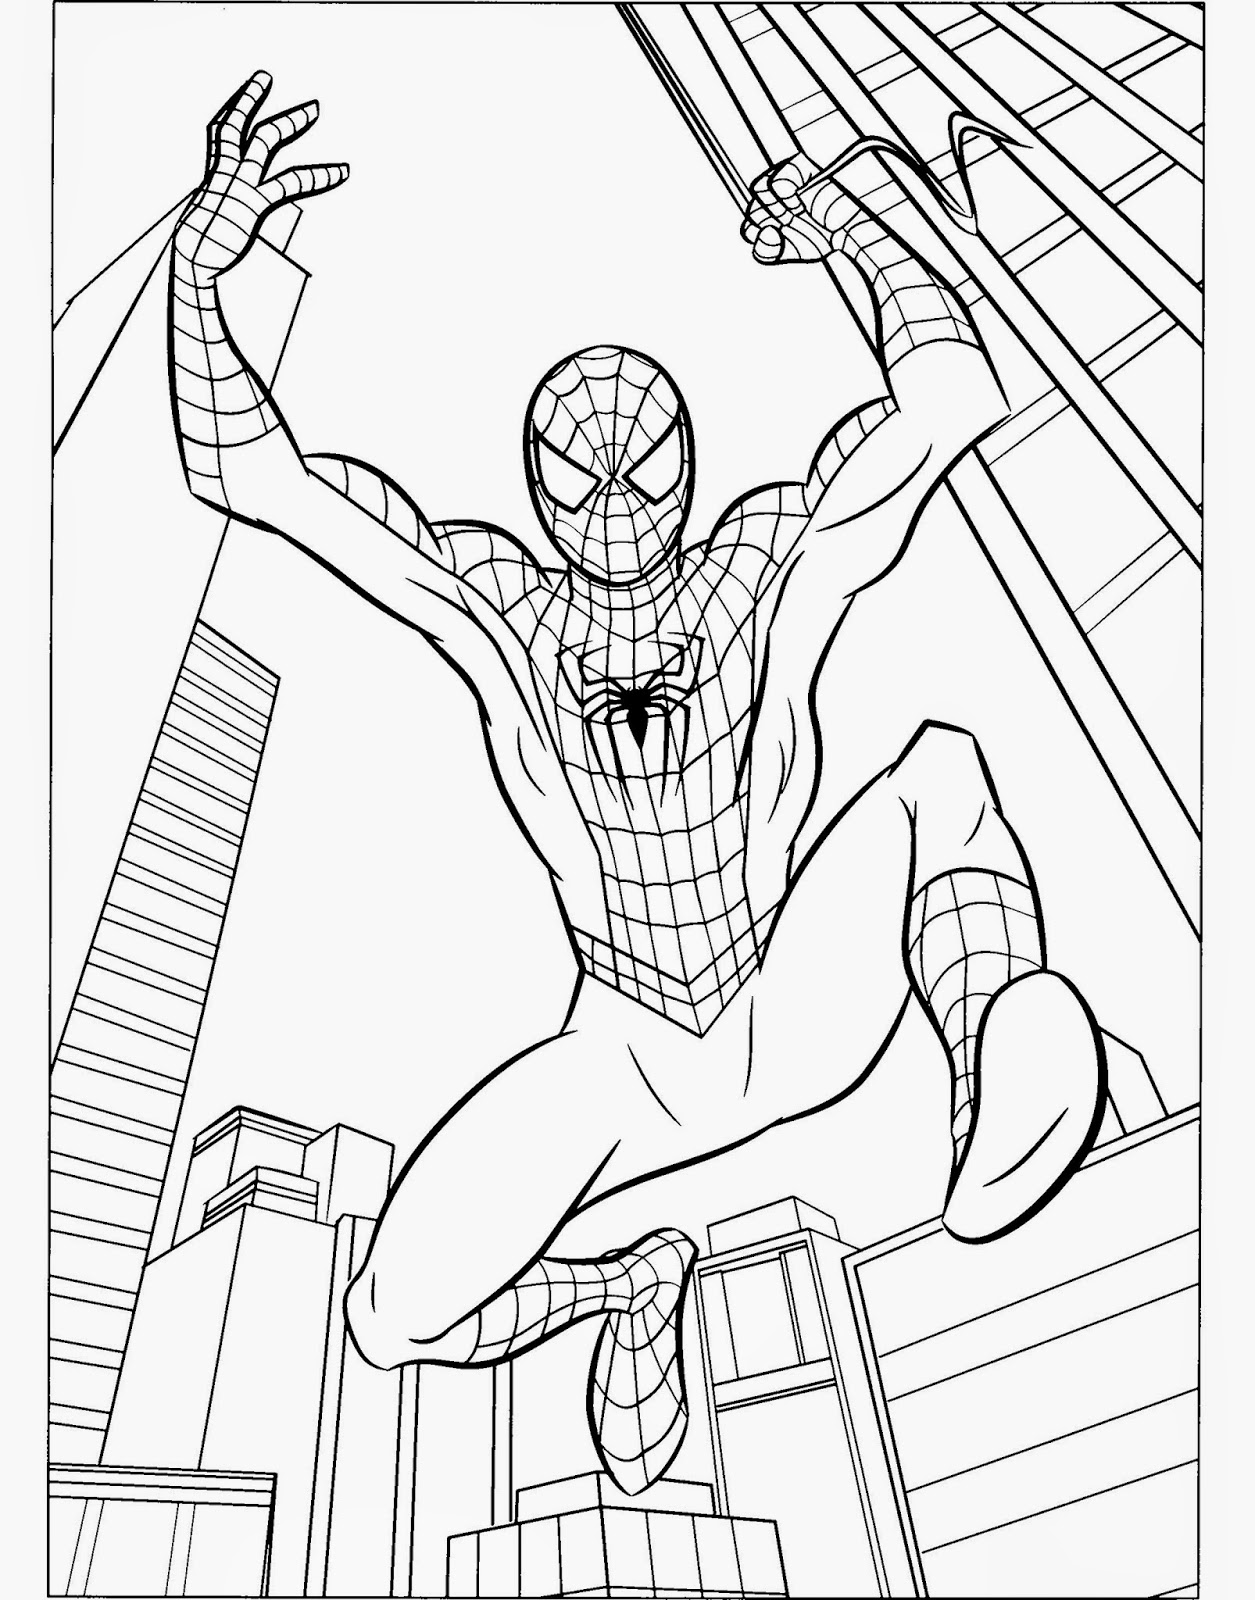 coloring sheet spiderman coloring pages spiderman coloring page download for free print sheet spiderman pages coloring coloring